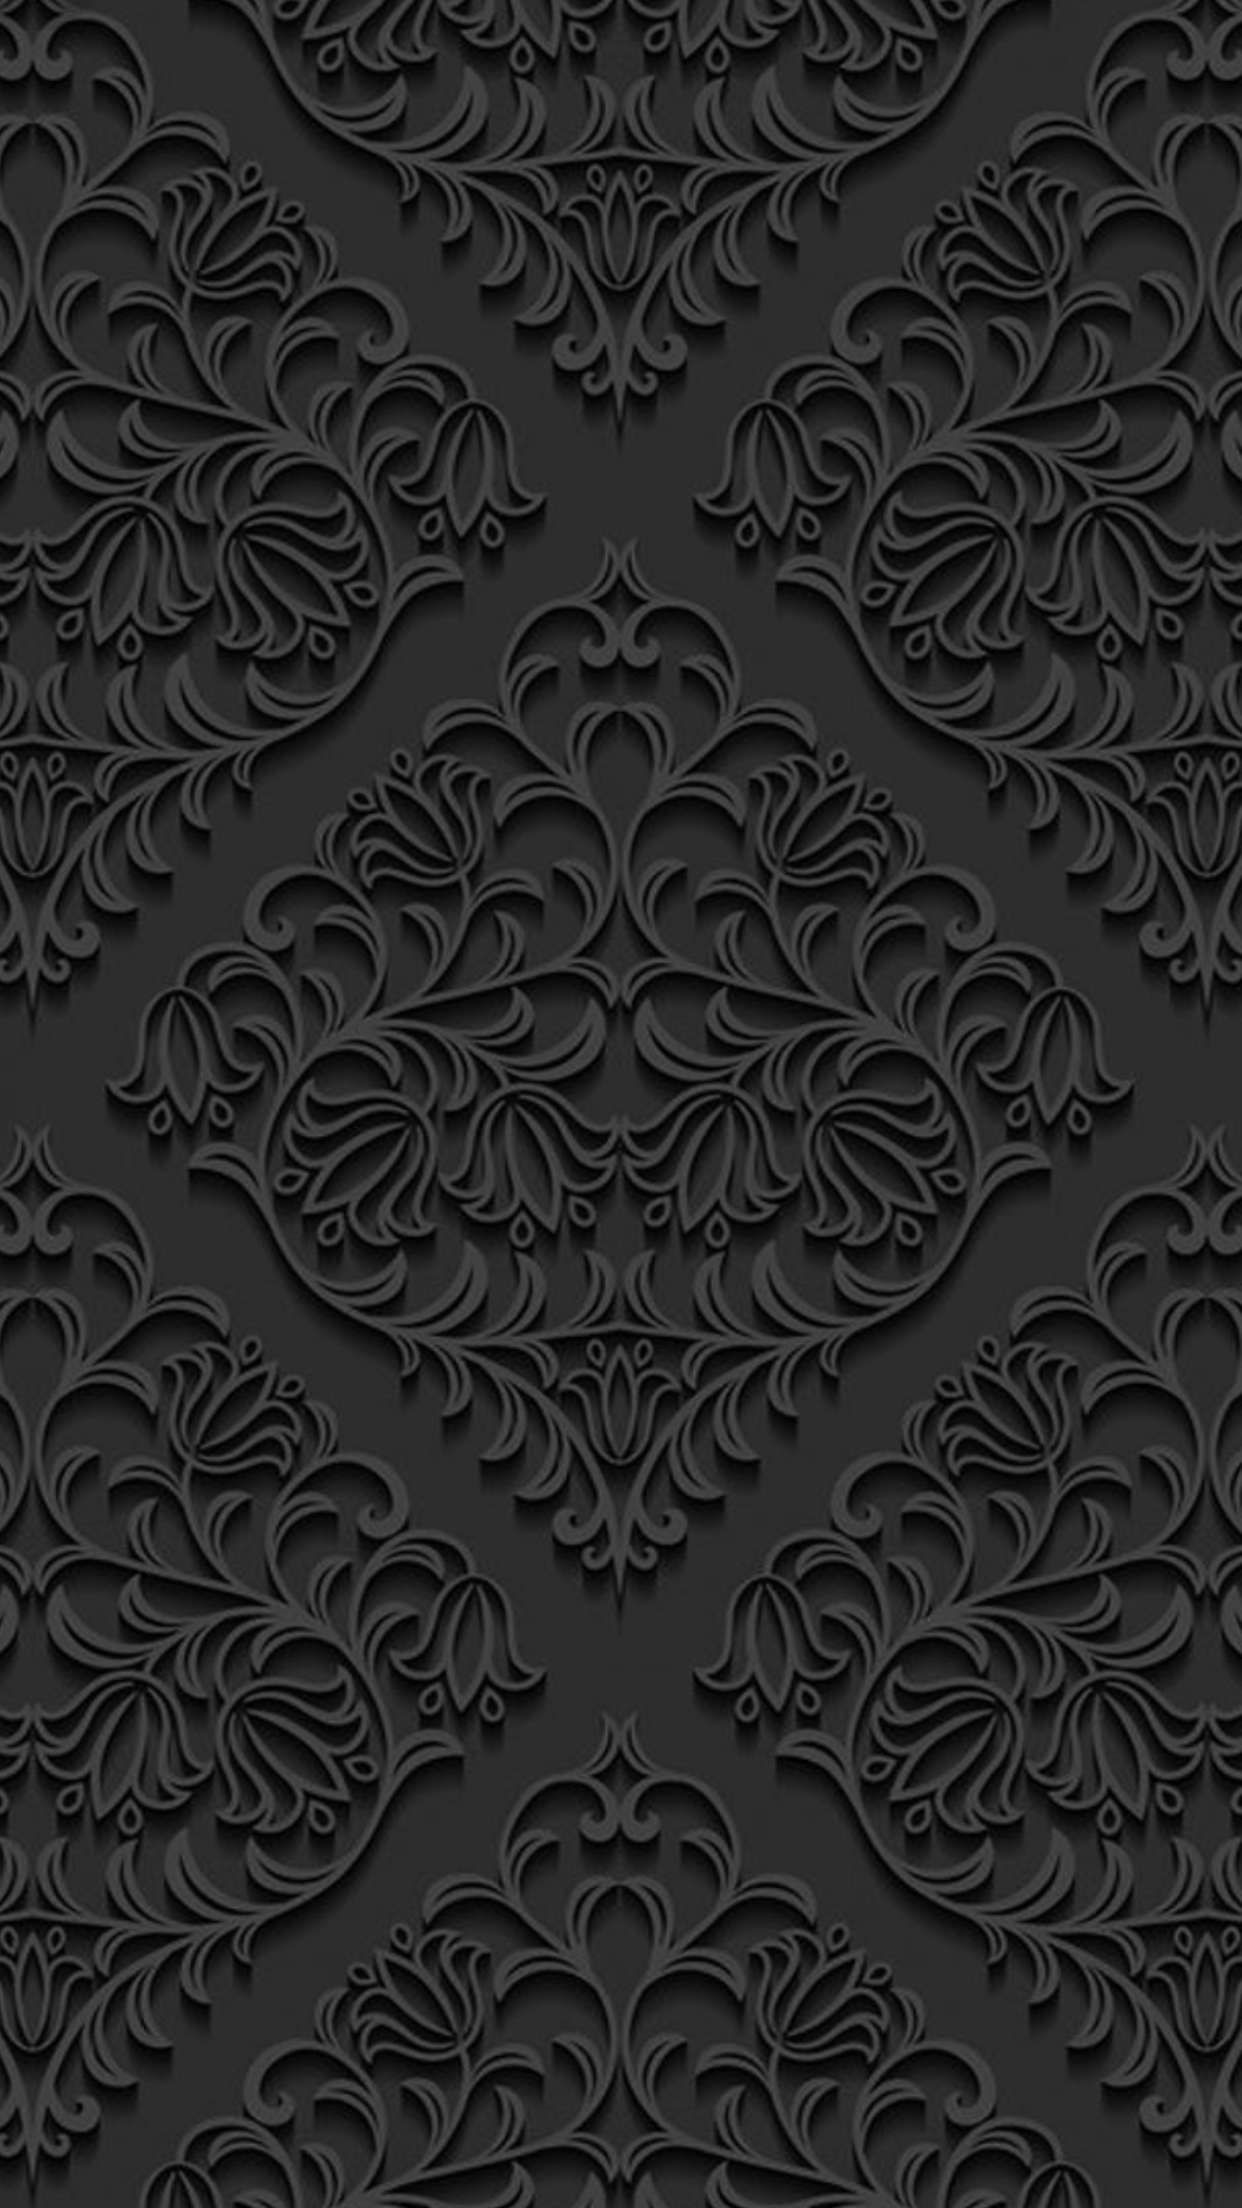 Get Top Black Wallpaper for Smartphones 2019